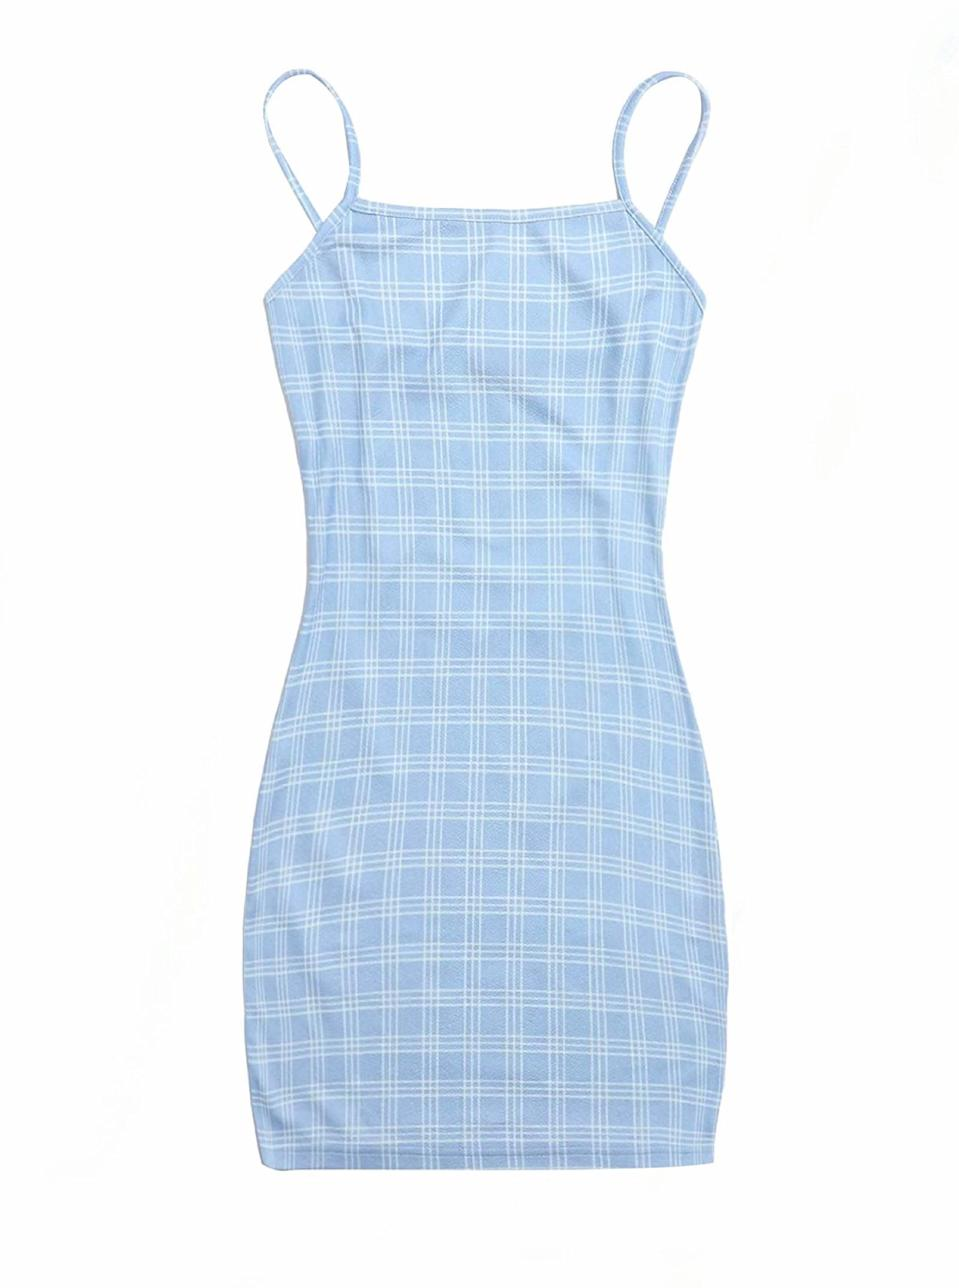 """This plaid mini dress comes in a long list of colors and patterns, all of which serve big <a href=""""https://www.glamour.com/story/how-to-dress-90s?mbid=synd_yahoo_rss"""" rel=""""nofollow noopener"""" target=""""_blank"""" data-ylk=""""slk:Cher Herowitz energy"""" class=""""link rapid-noclick-resp"""">Cher Herowitz energy</a>. $10, Amazon. <a href=""""https://www.amazon.com/Floerns-Womens-Plaid-Bodycon-Yellow/dp/B08MX2T6PZ/"""" rel=""""nofollow noopener"""" target=""""_blank"""" data-ylk=""""slk:Get it now!"""" class=""""link rapid-noclick-resp"""">Get it now!</a>"""